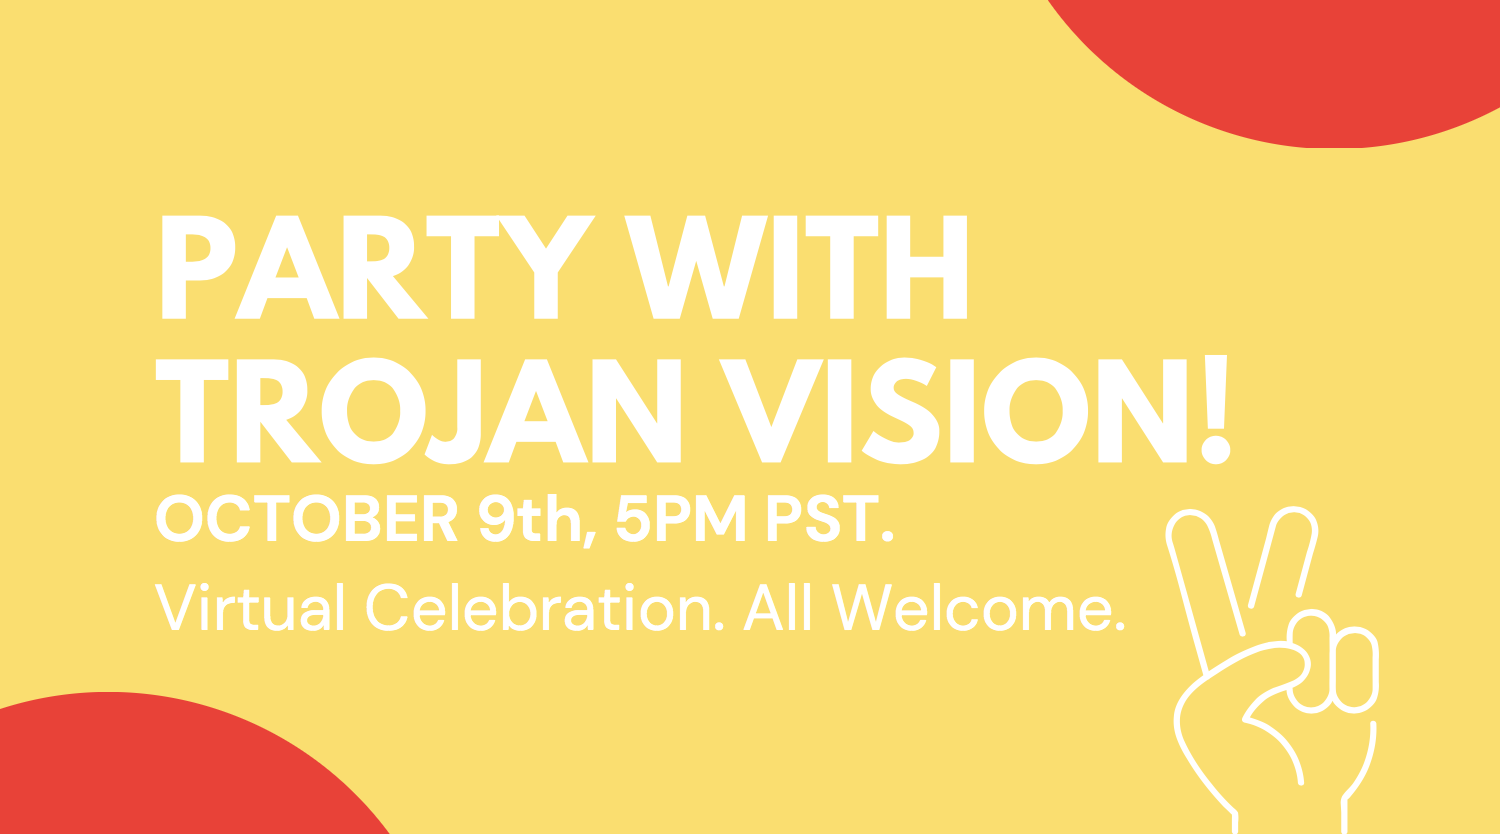 Party with Trojan Vision